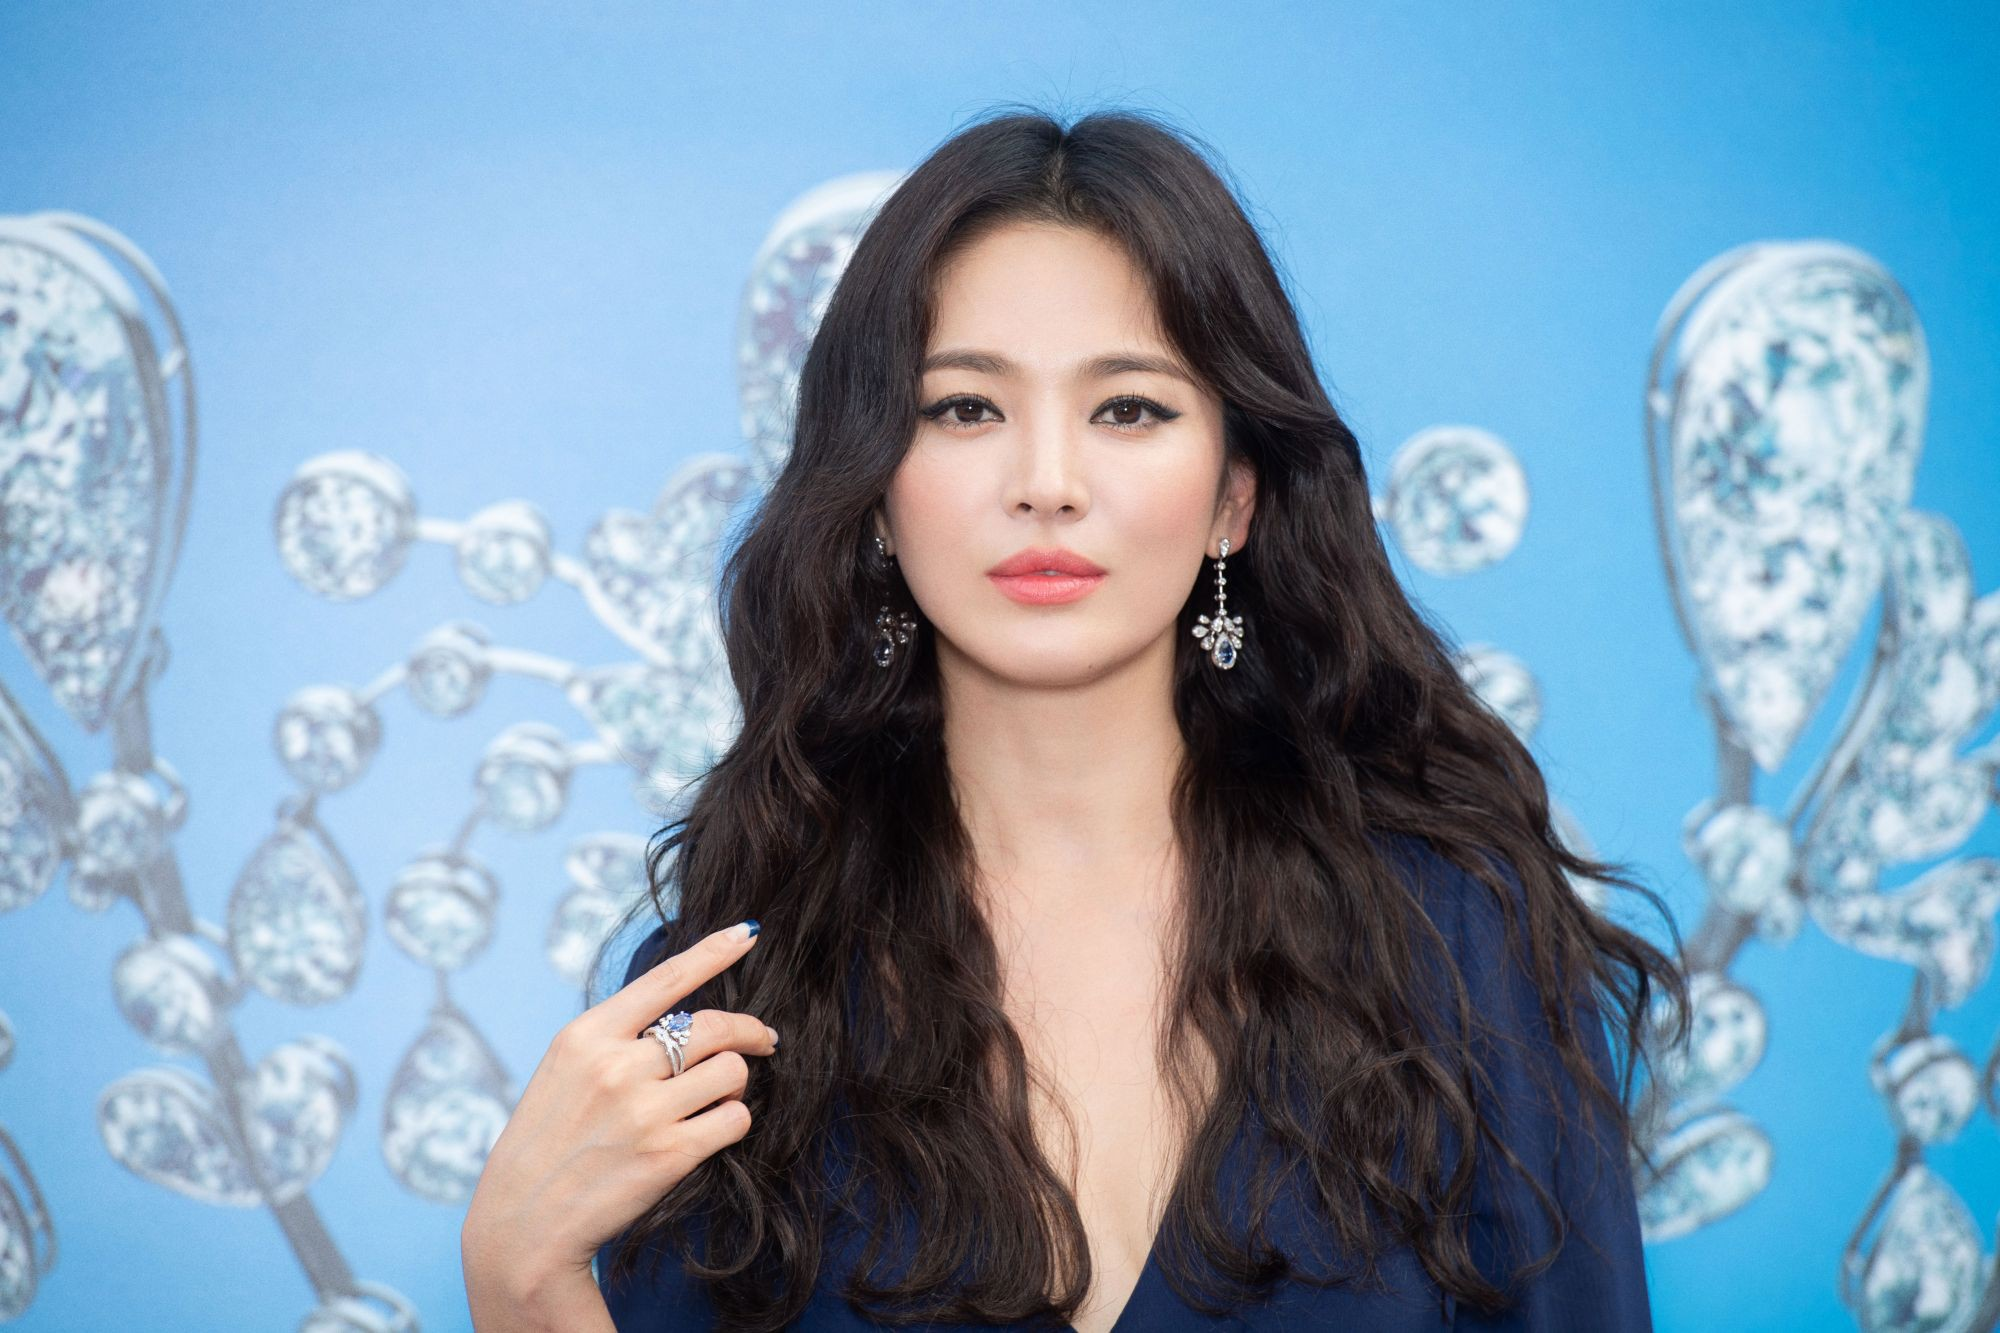 voh-song-hye-kyo-tra-loi-phong-van-voh.com.vn-anh3